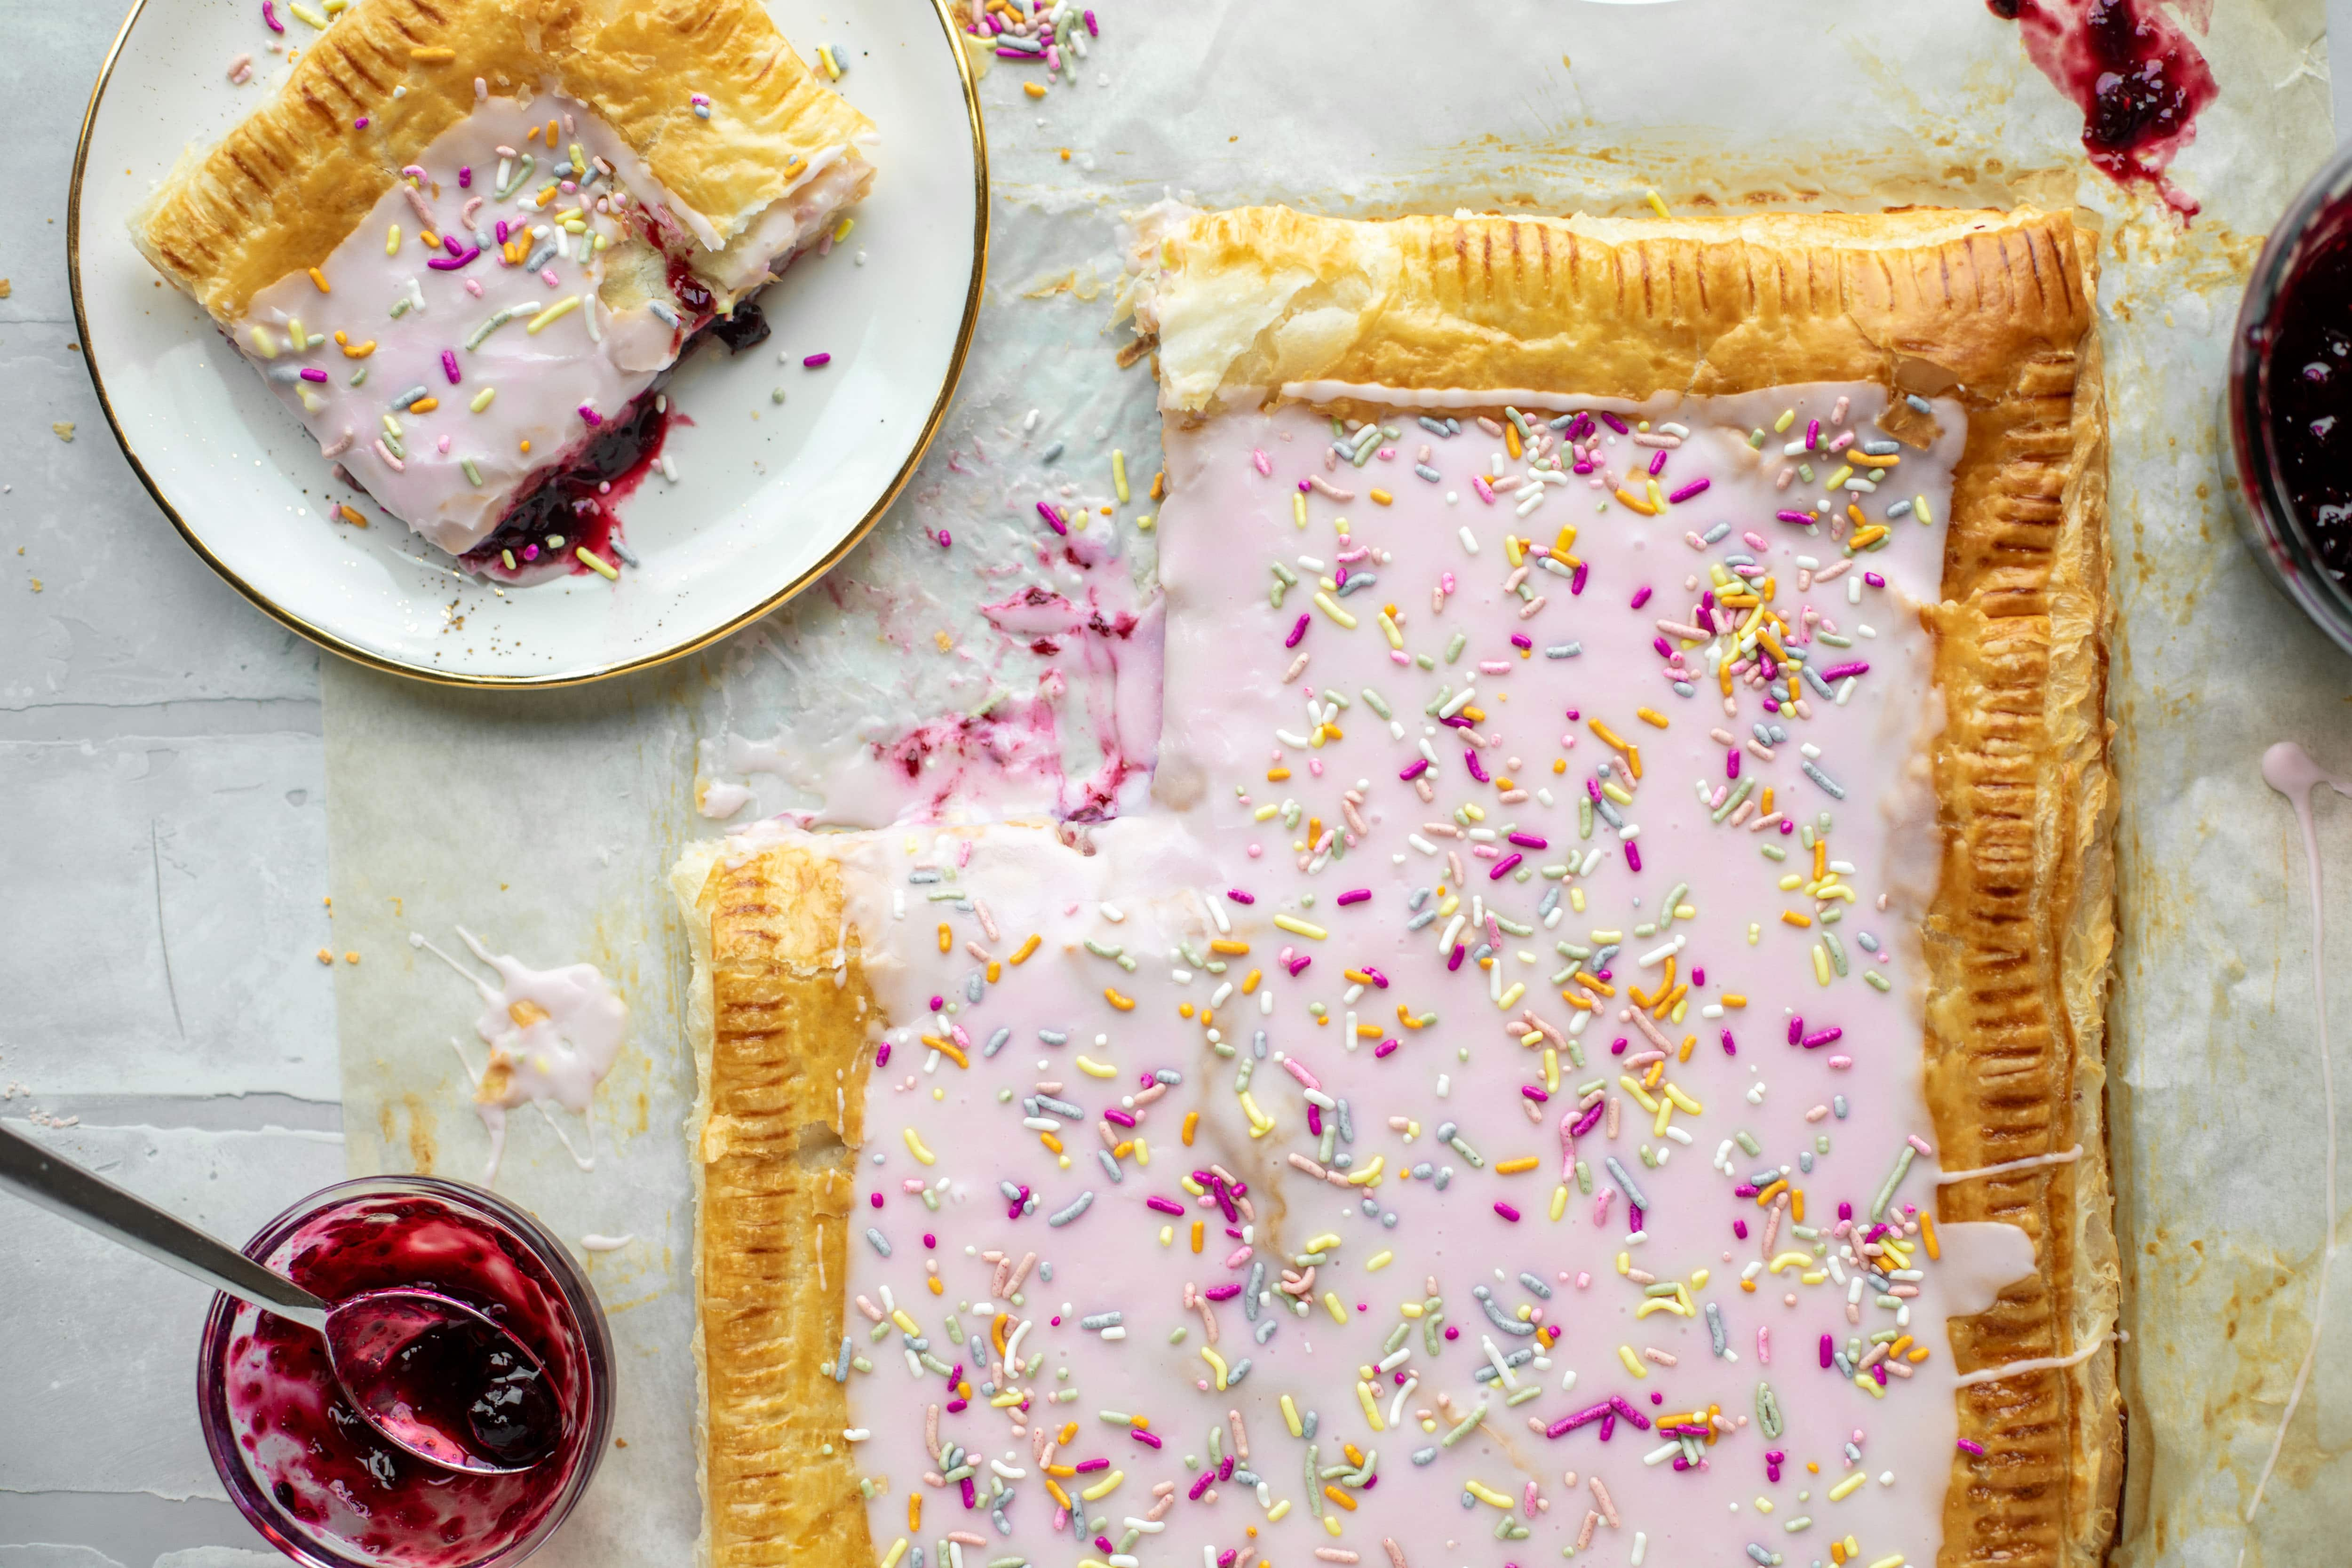 This giant pop tart recipe can be made exclusively with ingredients in your freezer! I love to make a berry lavender flavor - so perfect for spring!